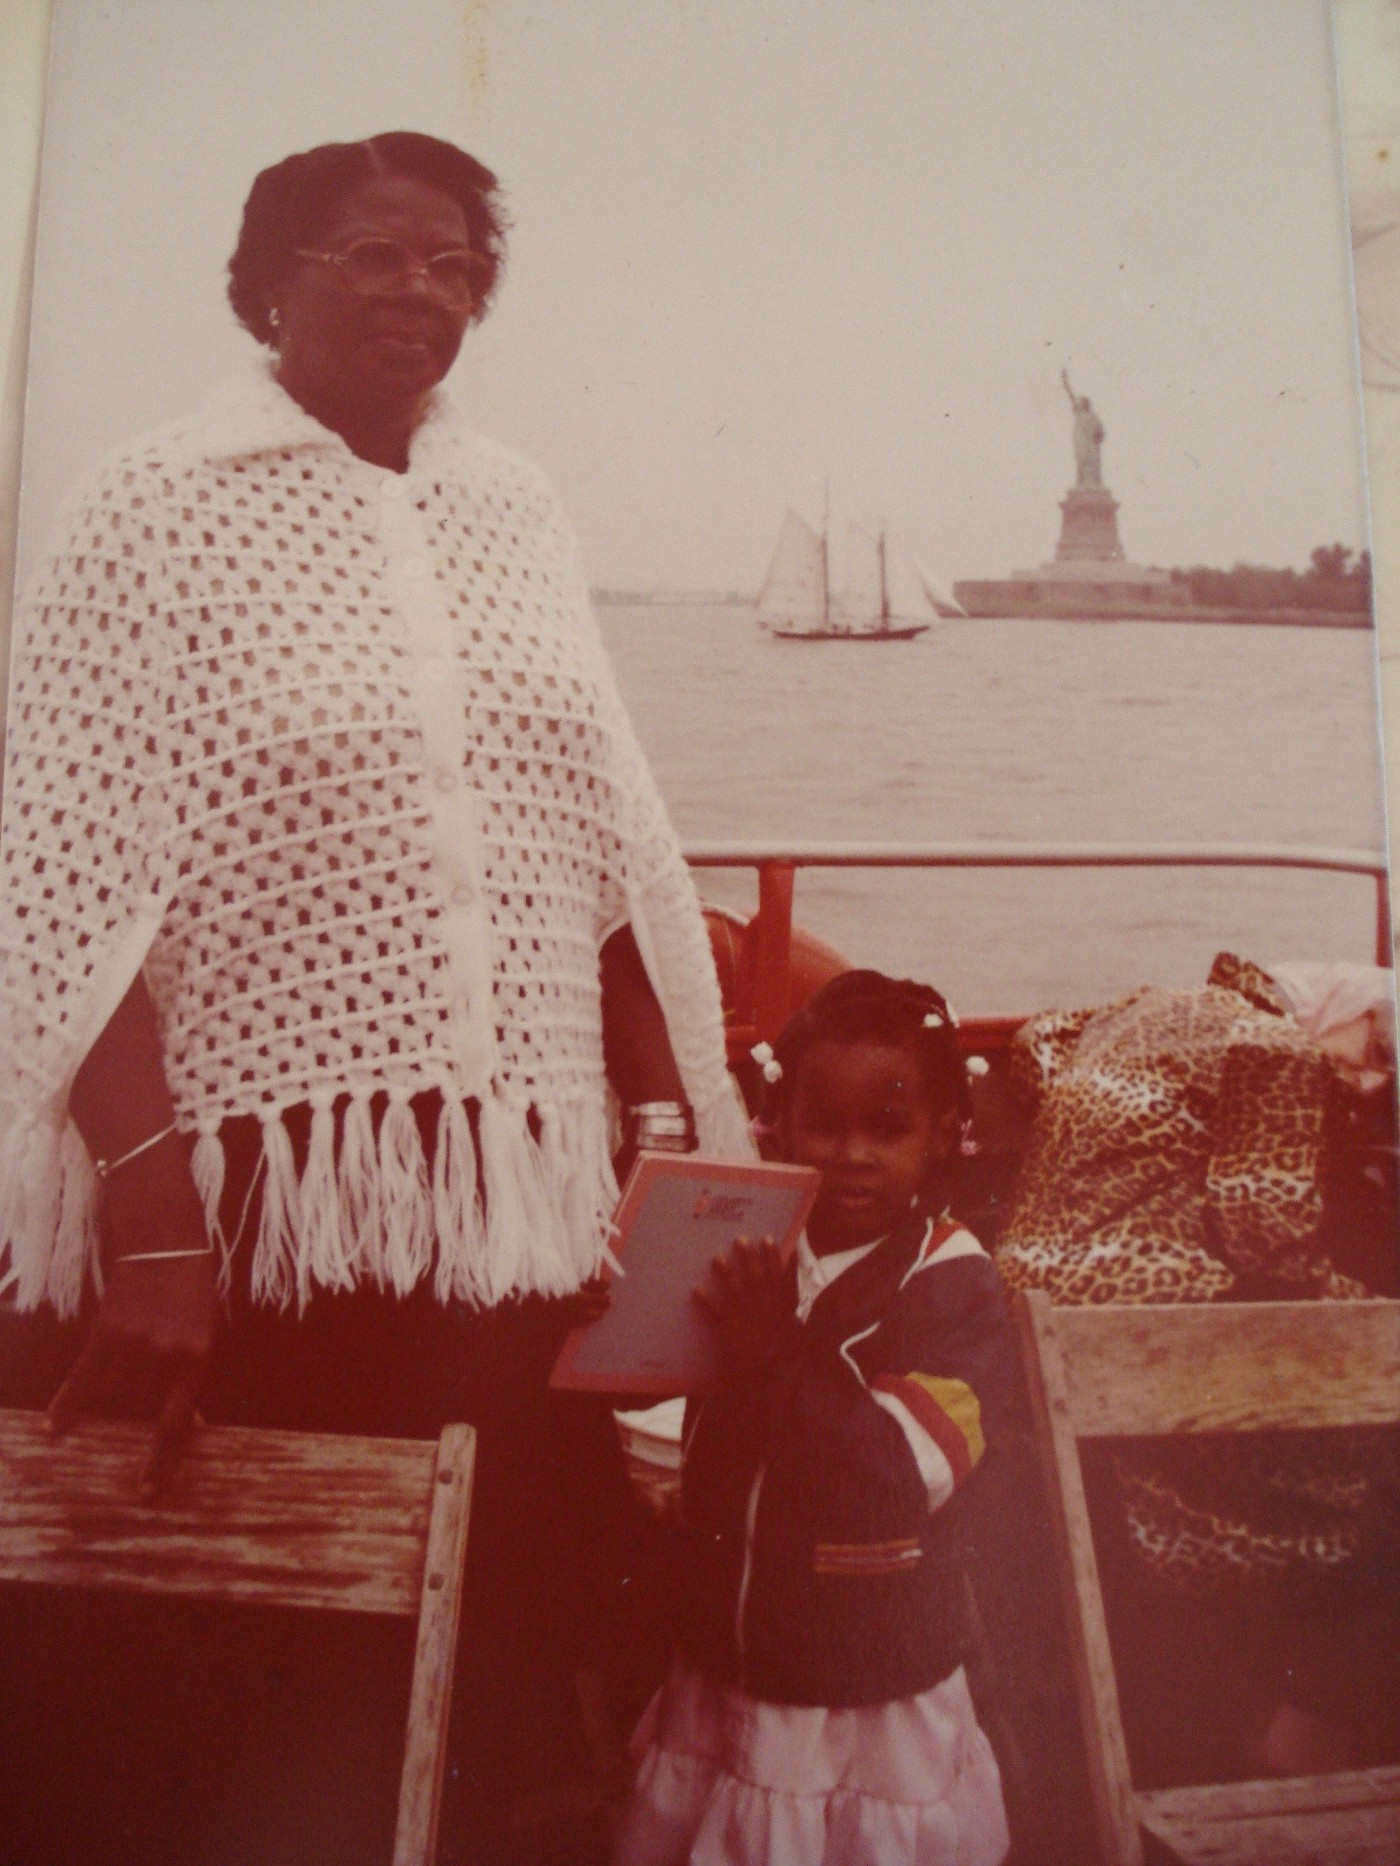 A Black woman and her grandchild stand together on a ferry with the Statue of Liberty in the distance. Circa 1983.